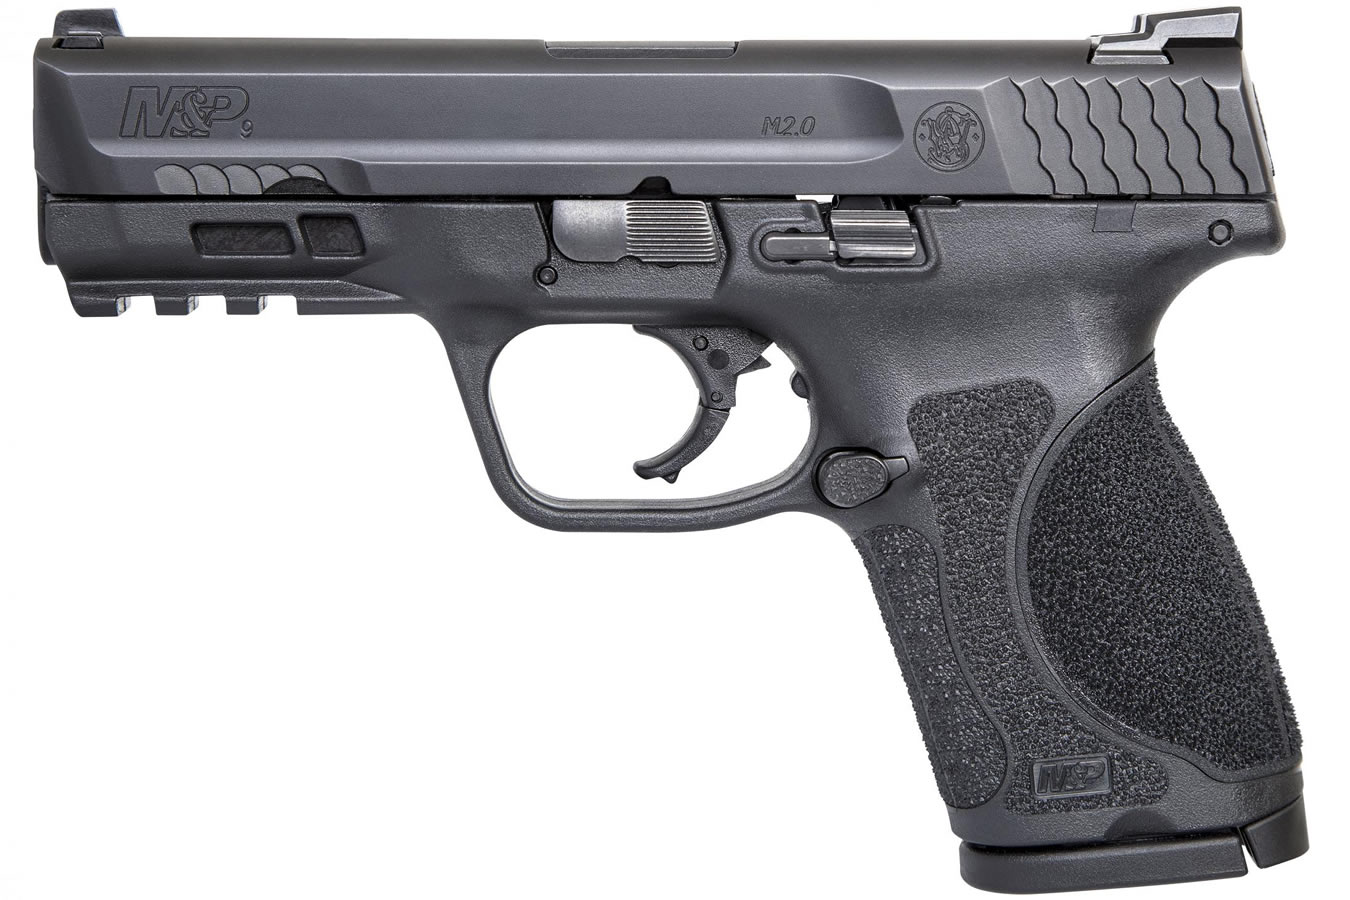 SMITH AND WESSON MP9 M2.0 COMPACT 9MM W/O THUMB SAFETY